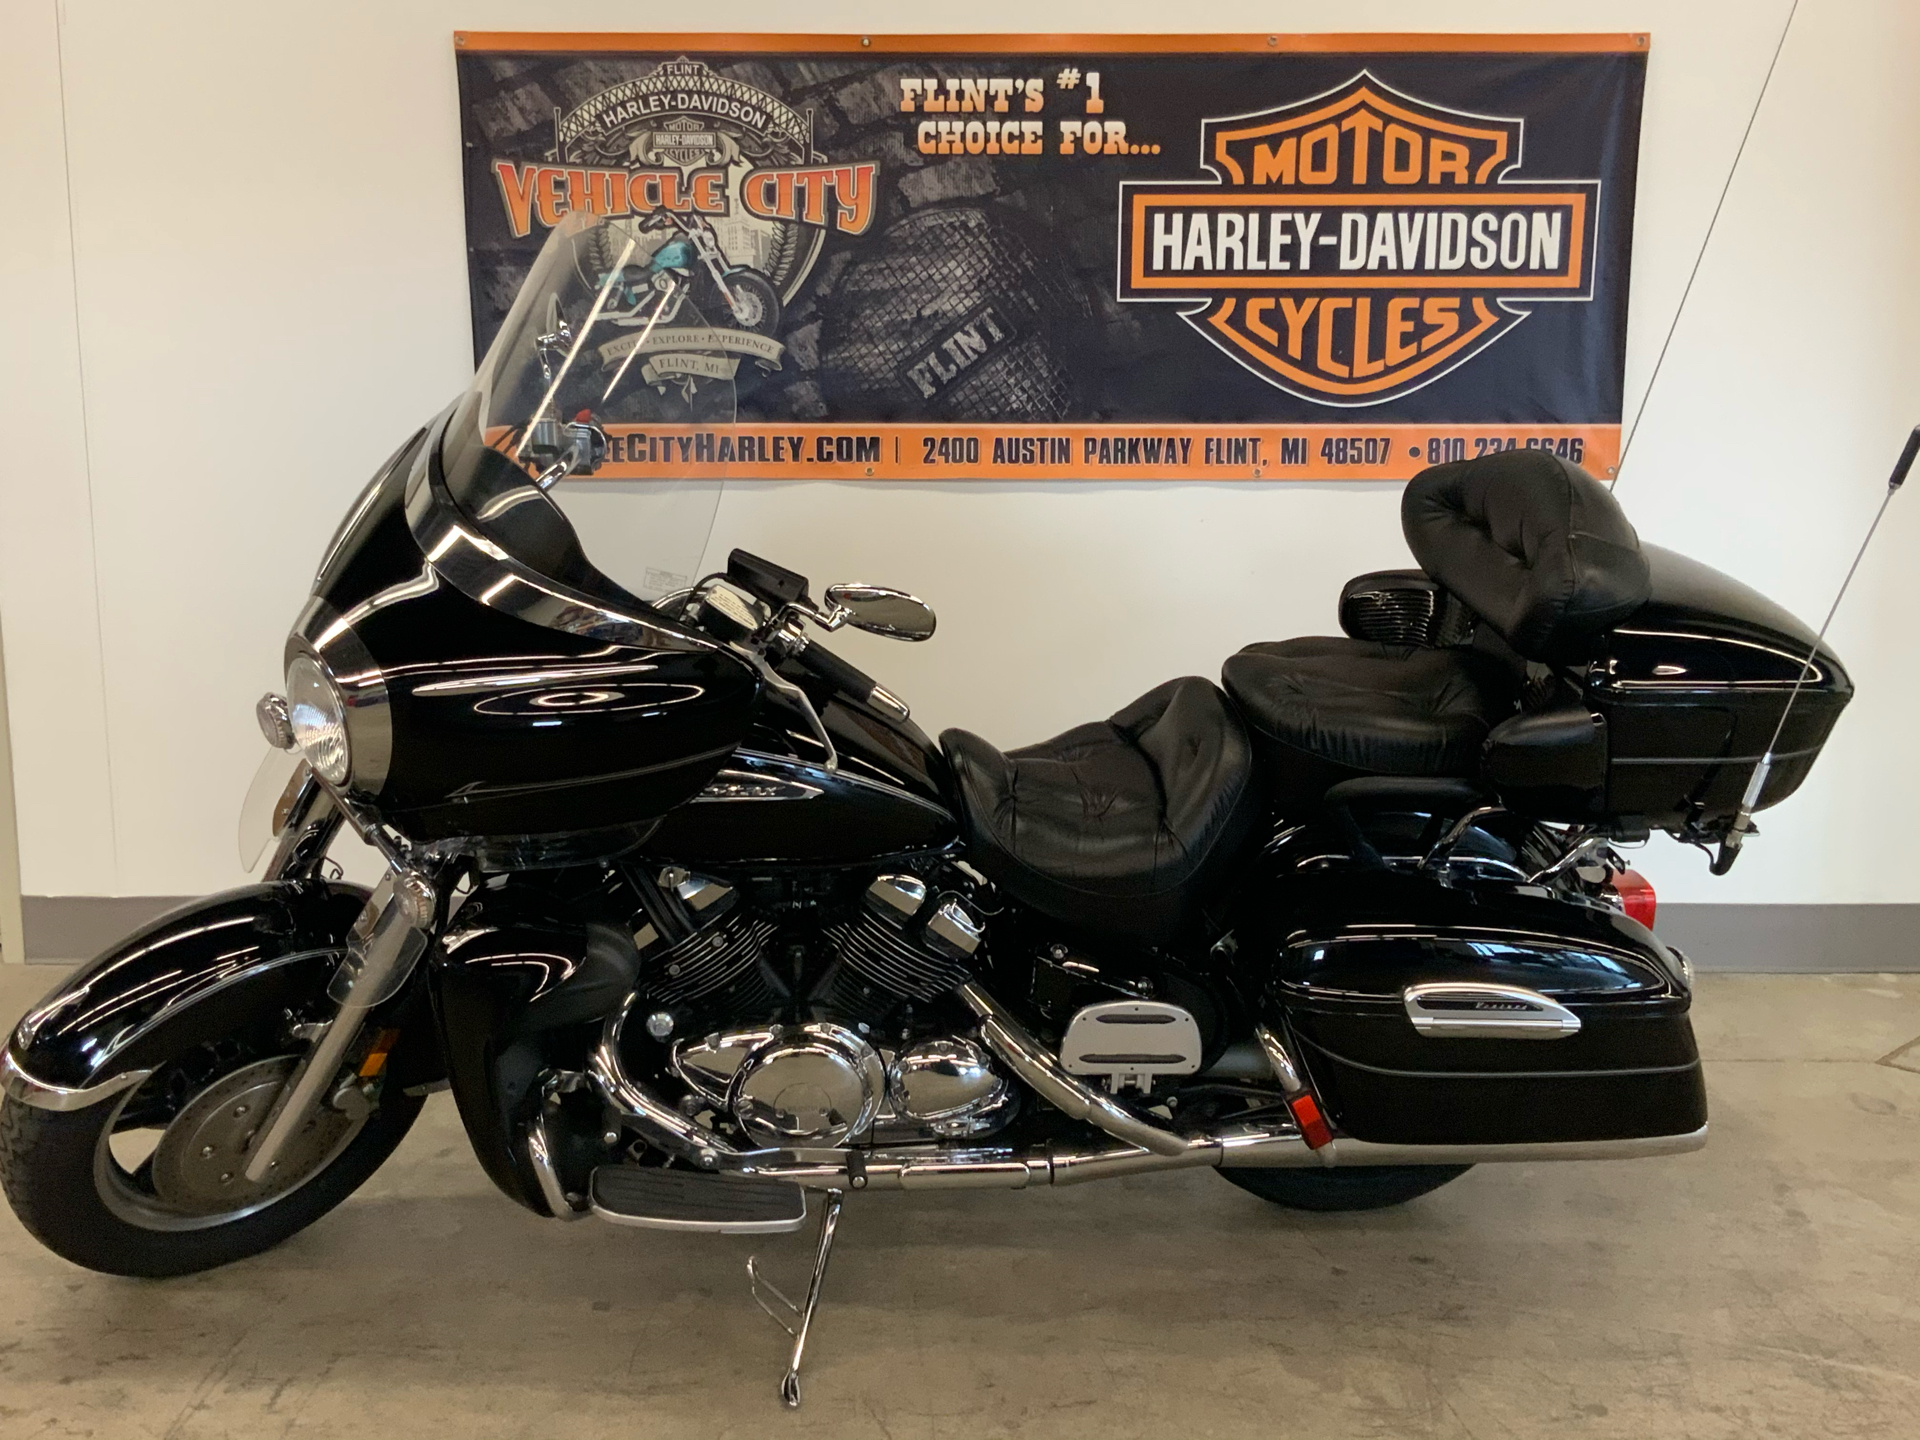 2012 Yamaha Royal Star Venture S in Flint, Michigan - Photo 5